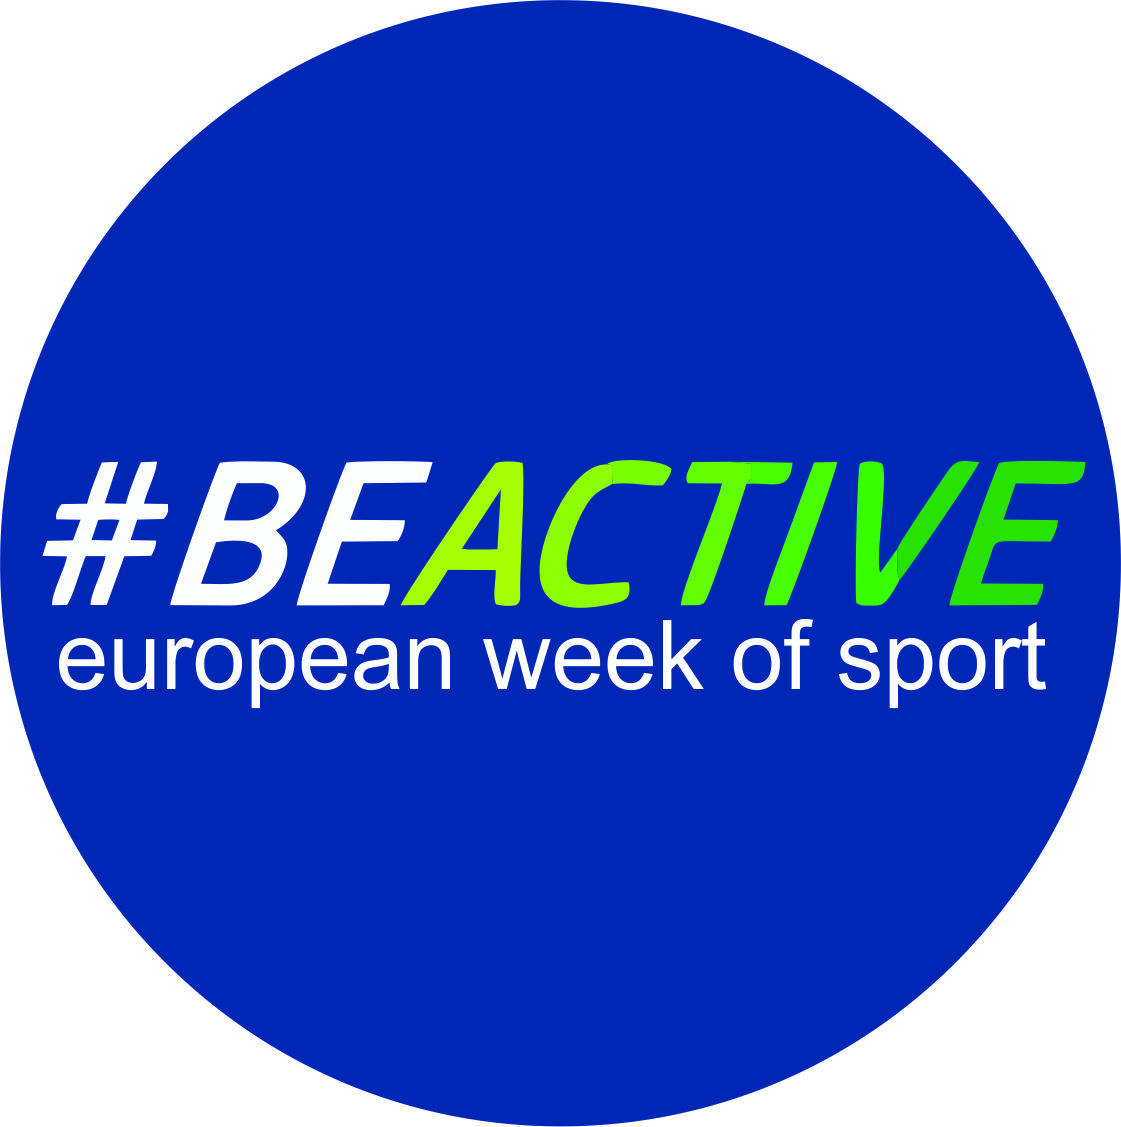 European Week of Sport